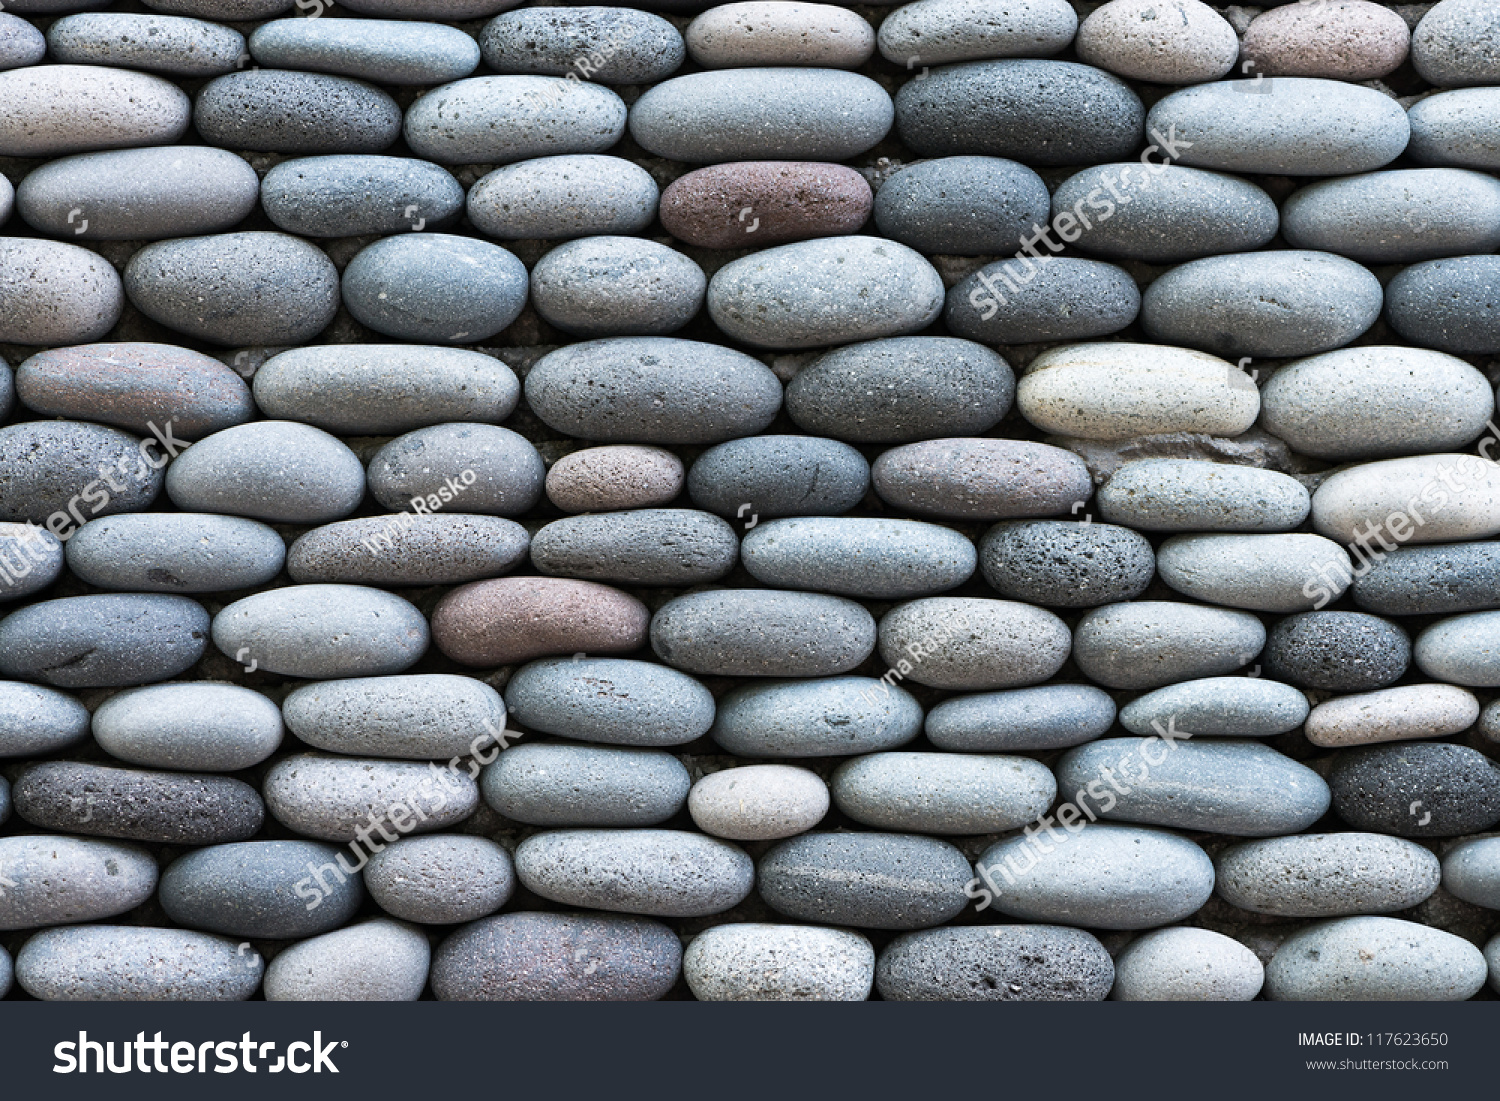 Smooth shaped white stones surface texture background stock photo - Peddle Stone Wall Texture Background